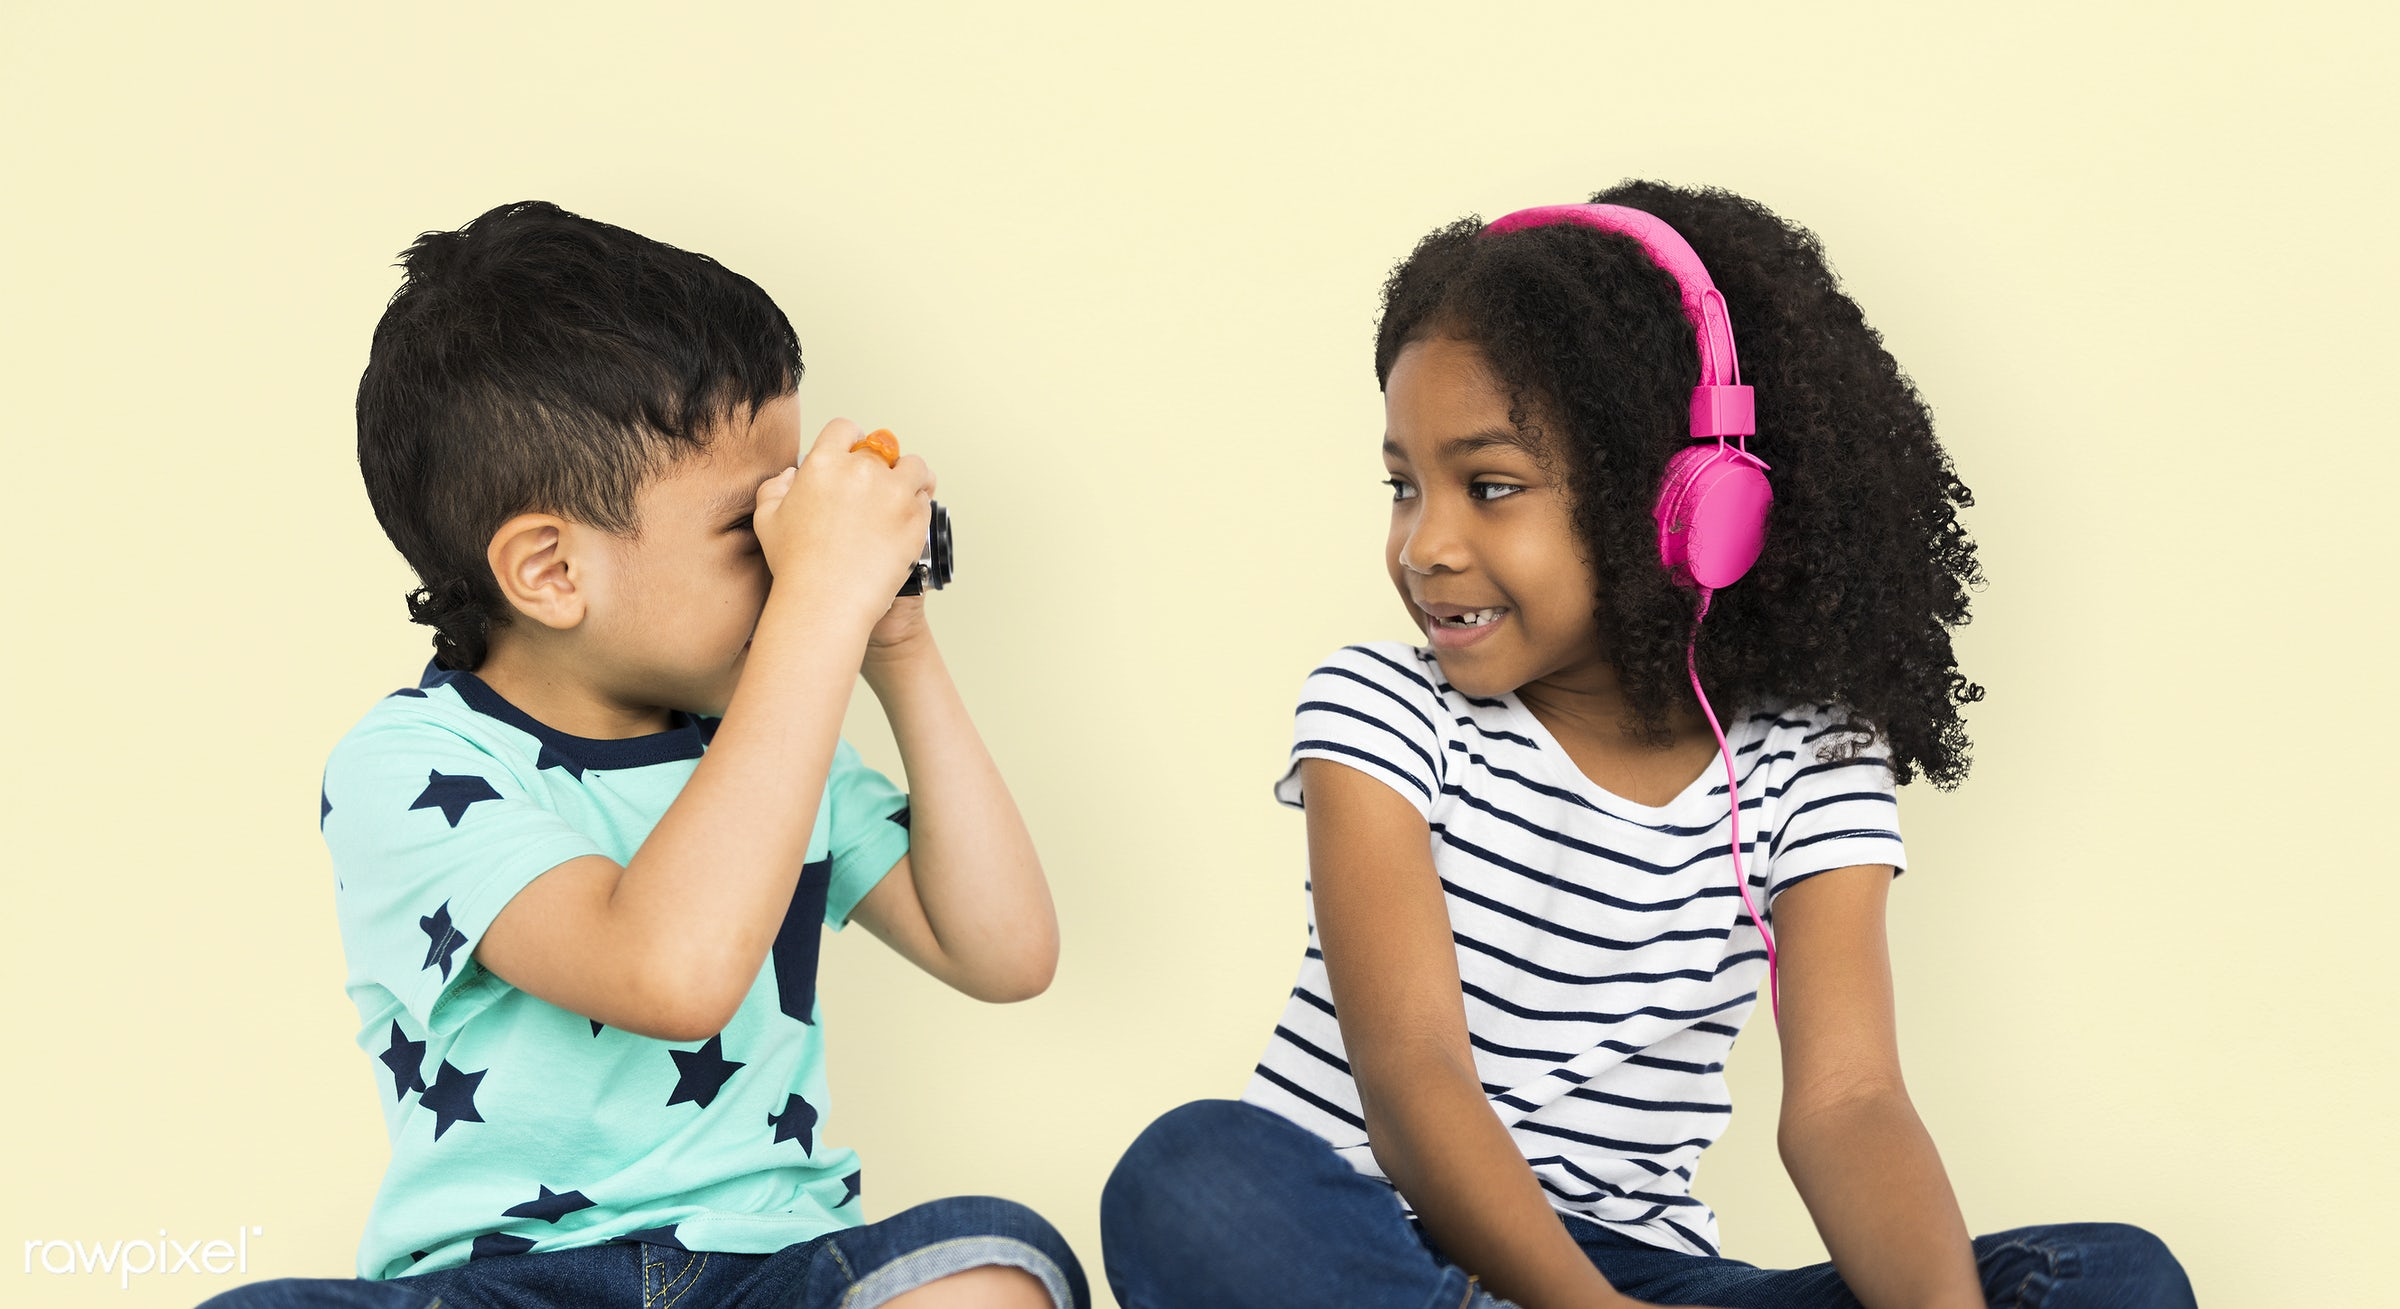 studio, expression, person, little, people, kid, friends, friendship, photographer, childhood, cheerful, taking photo,...